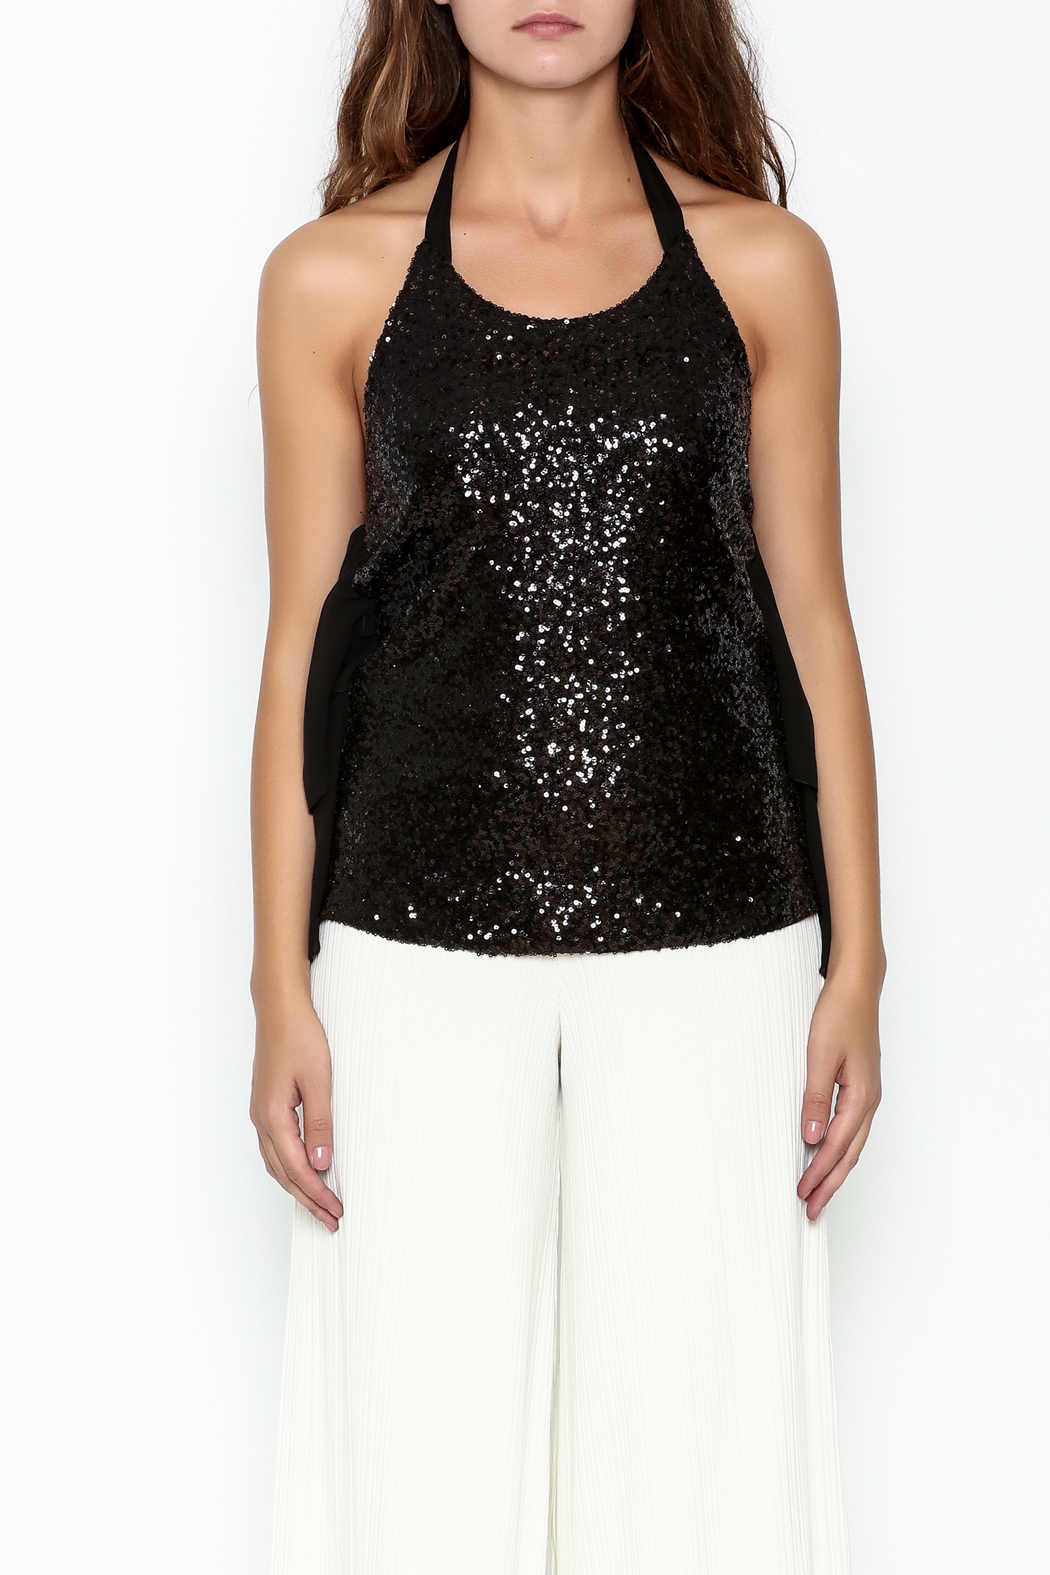 Marvy Fashion Sequined Halter Top - Front Full Image